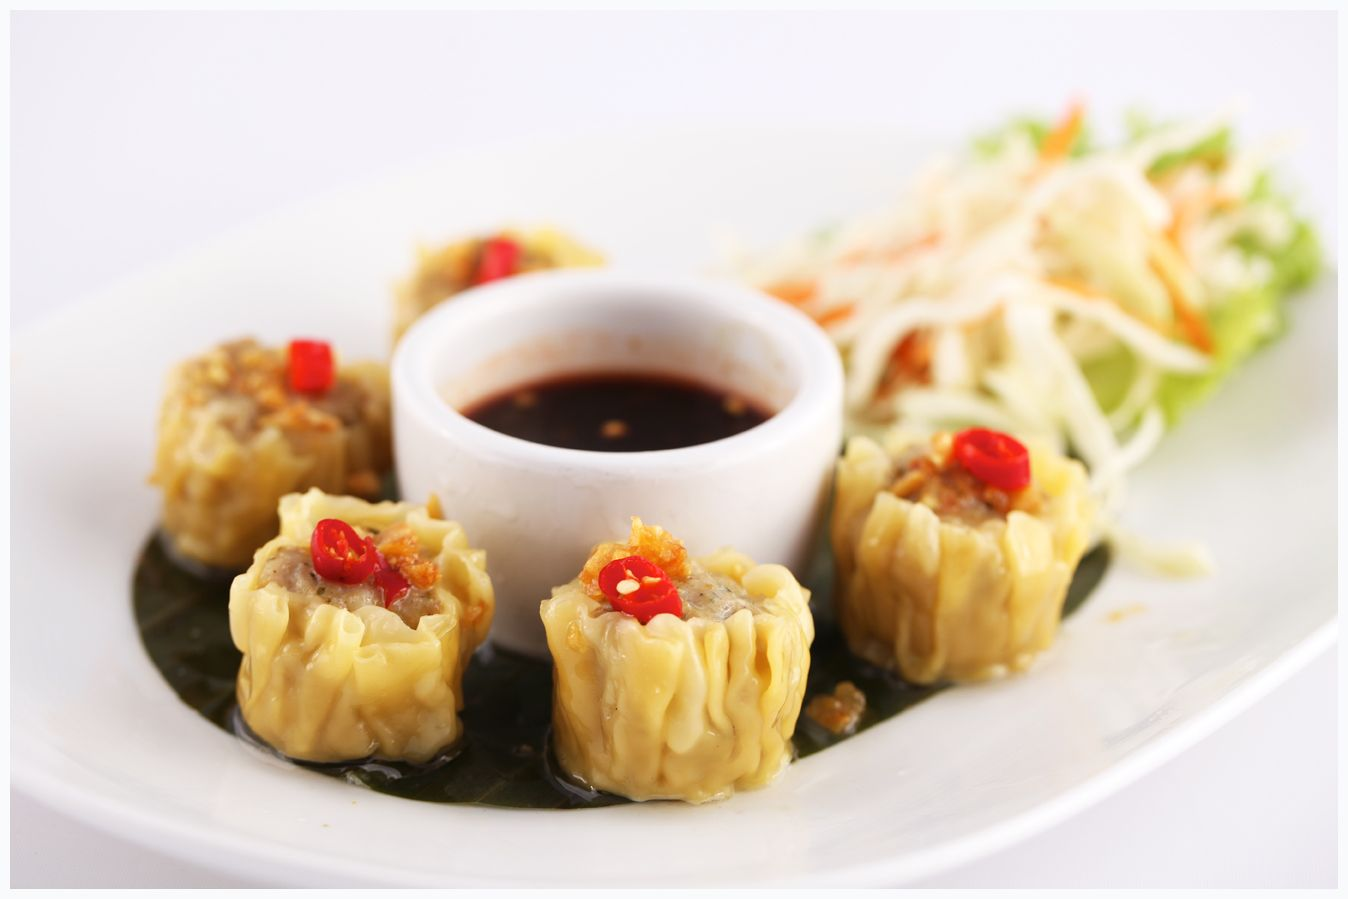 Kanom jeeb steamed chicken and shrimp dumplings with